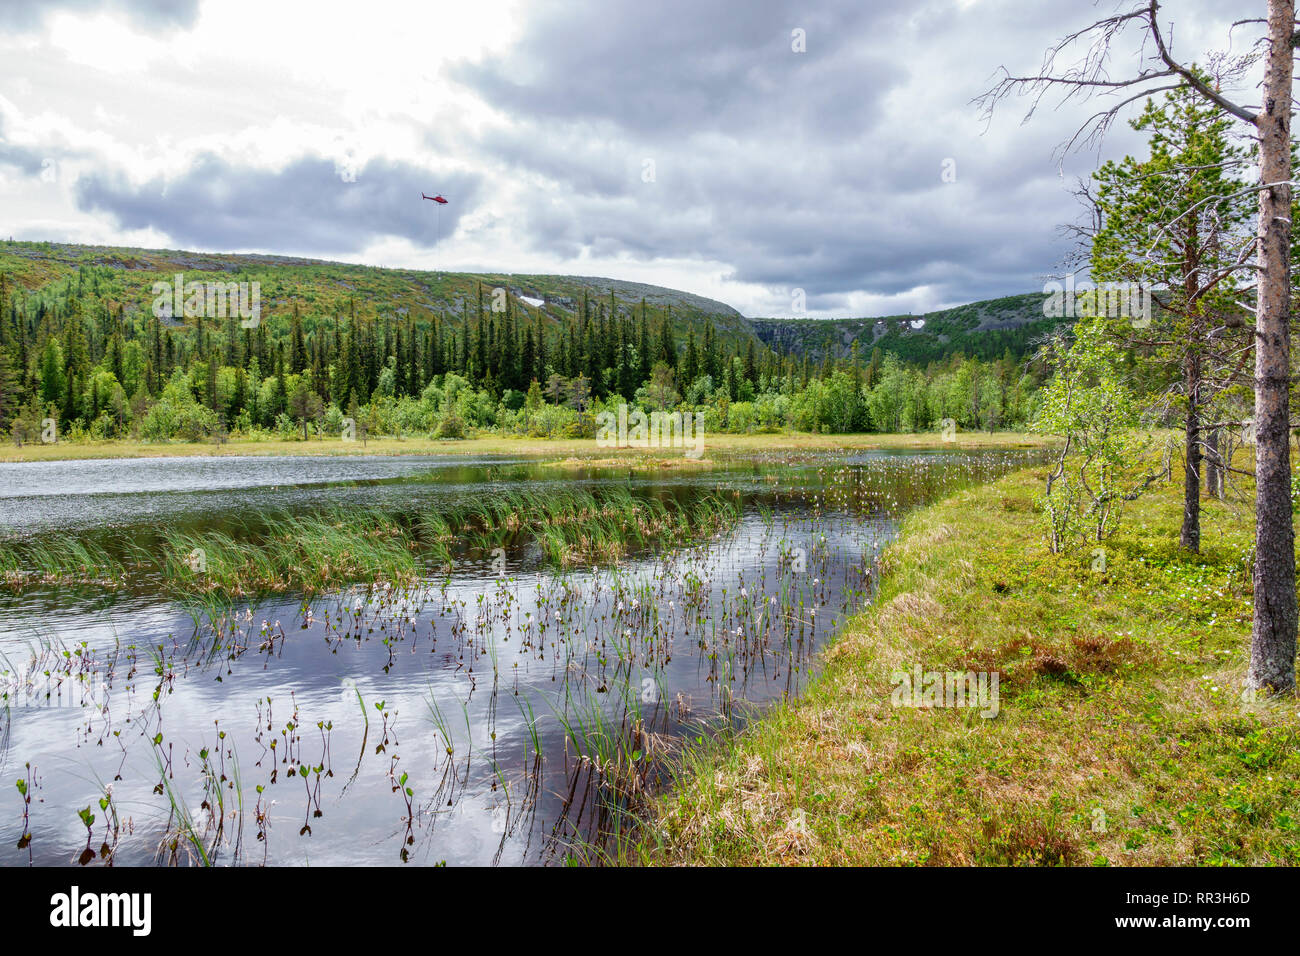 Forest lake in the woodland with a helicopter in the sky - Stock Image